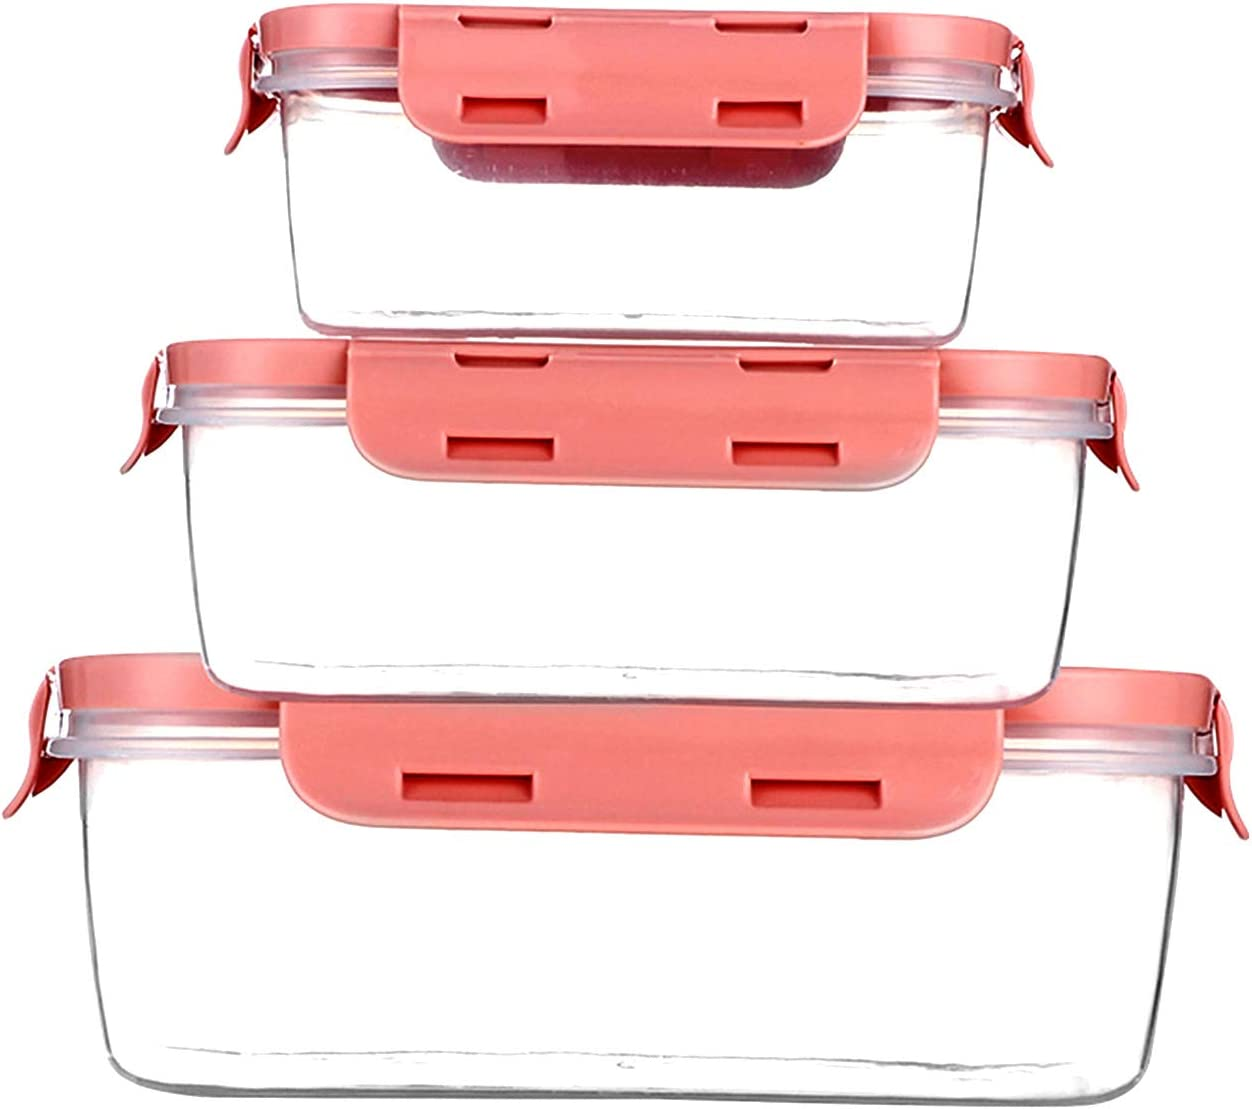 Food Storage Containers with Lids - Plastic Rectangular Food Containers with Lids - Lunch Containers with Lids - Meal Prep Containers -Leak Proof, Microwave & Dishwasher, Stackable, Reusable (pink)